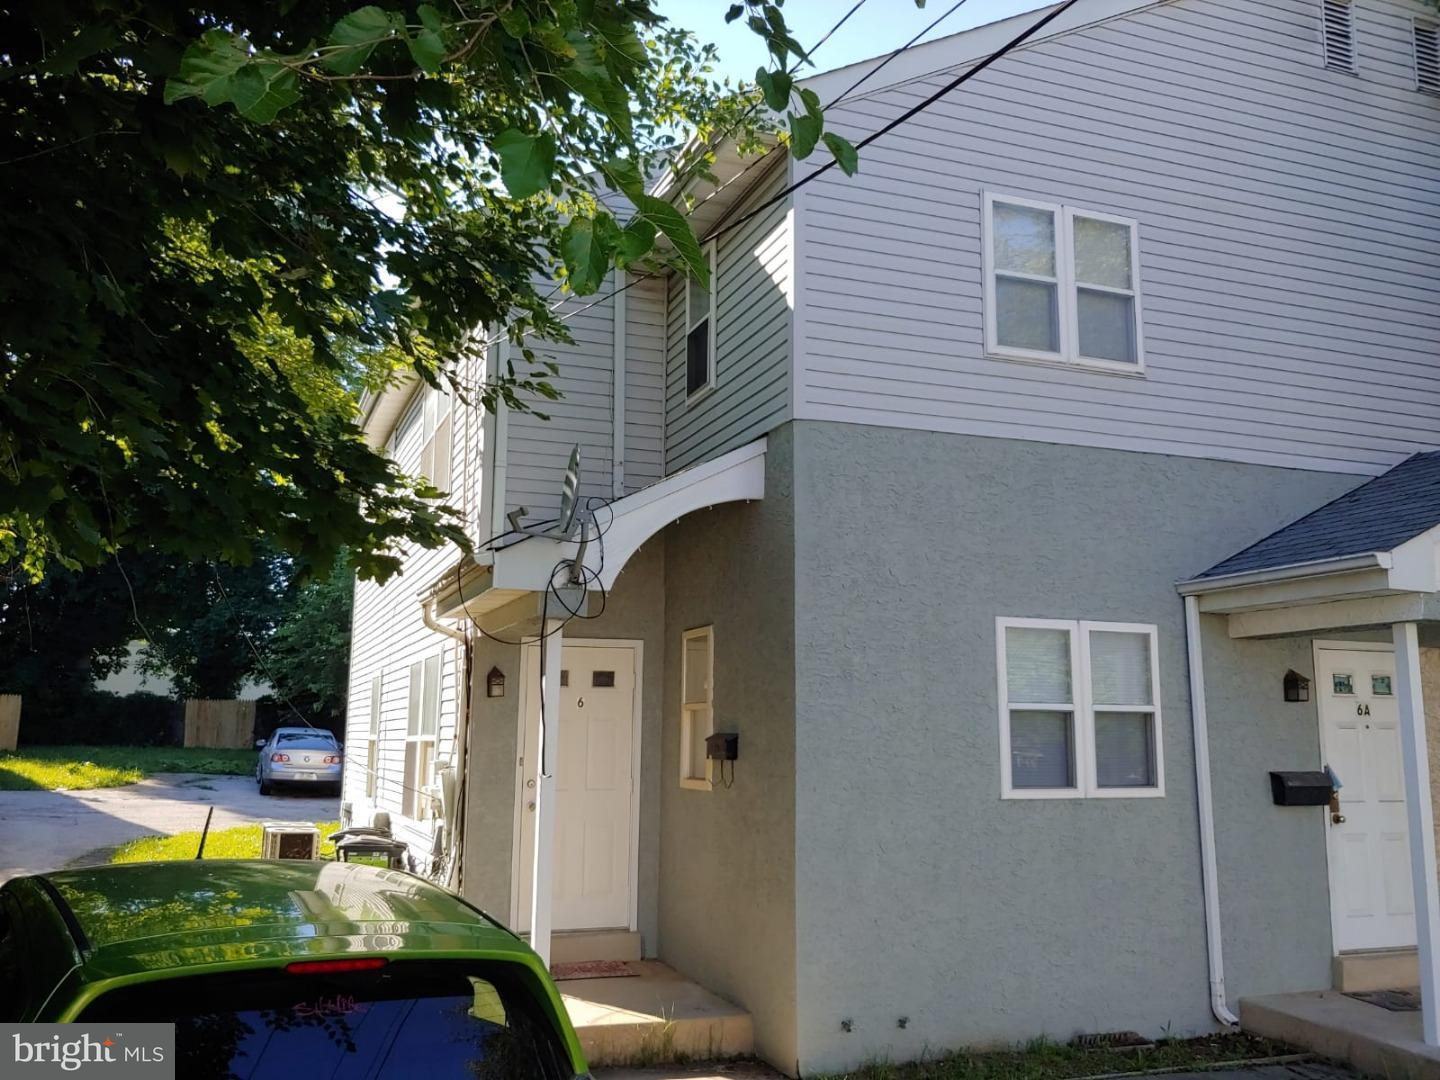 6 CLOVERDALE AVE, UPPER DARBY - Listed at $224,900, UPPER DARBY